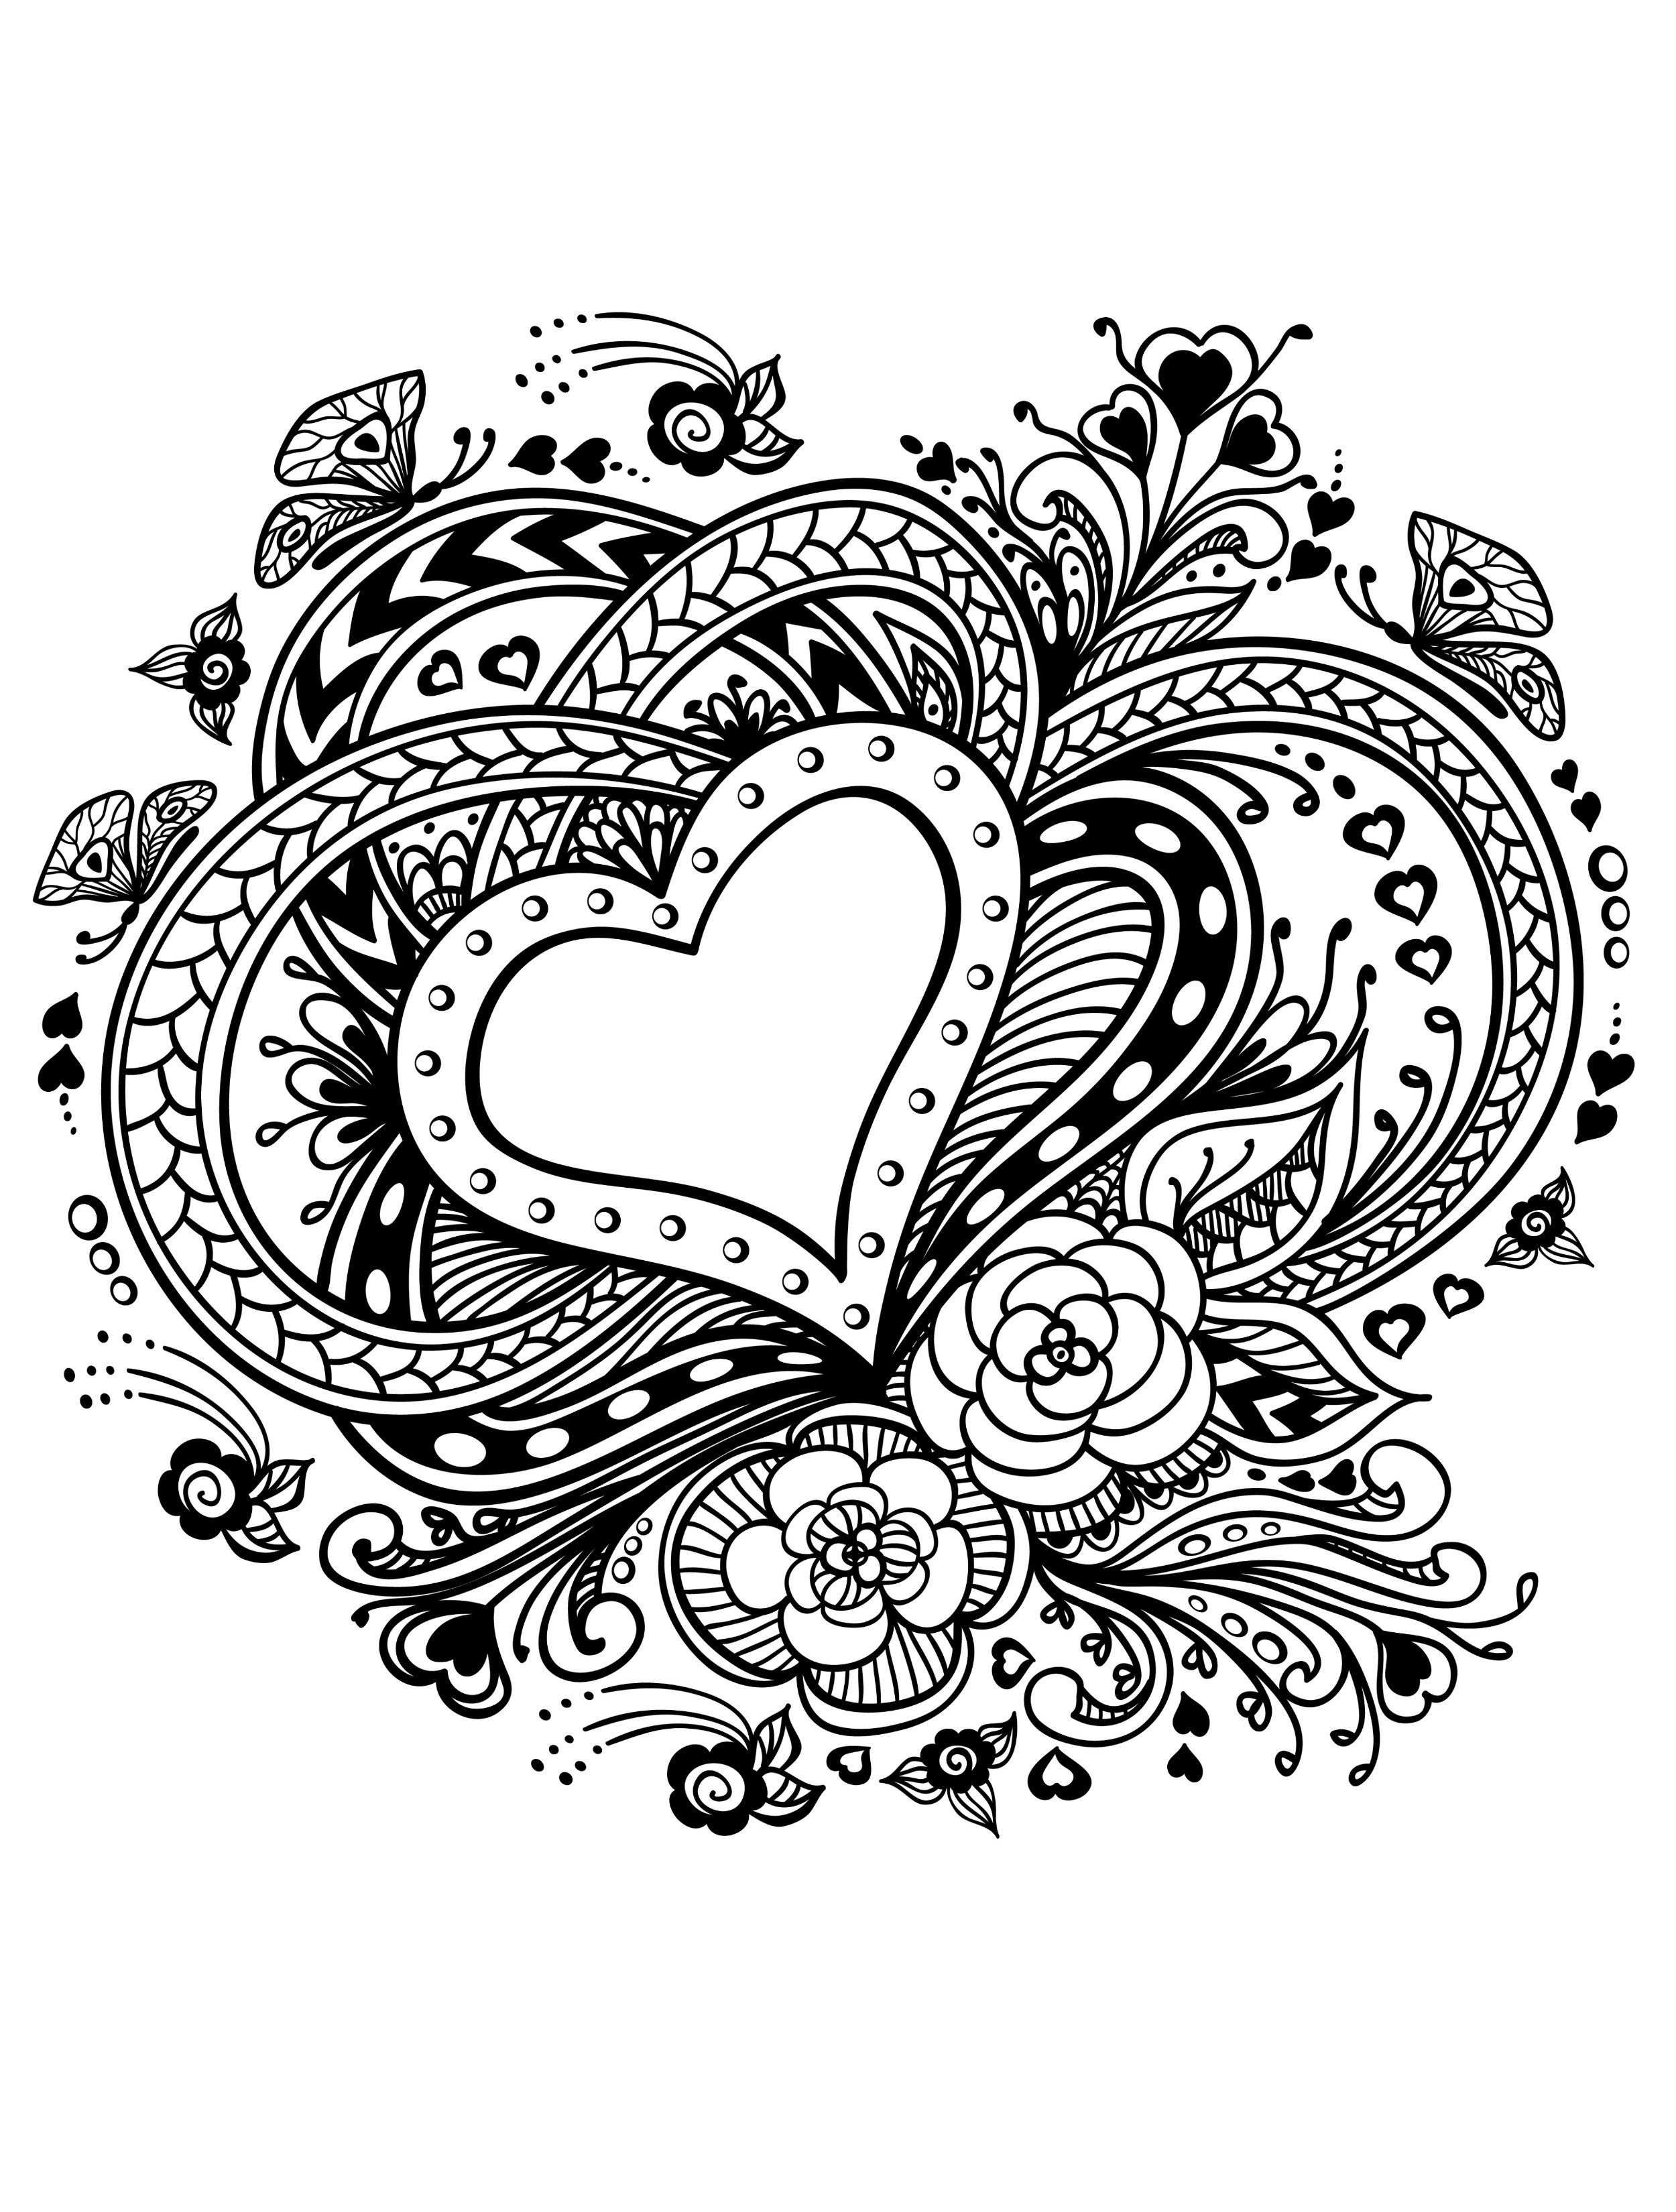 free printable paisley coloring pages flowers with paisley patterns coloring page free free paisley pages printable coloring